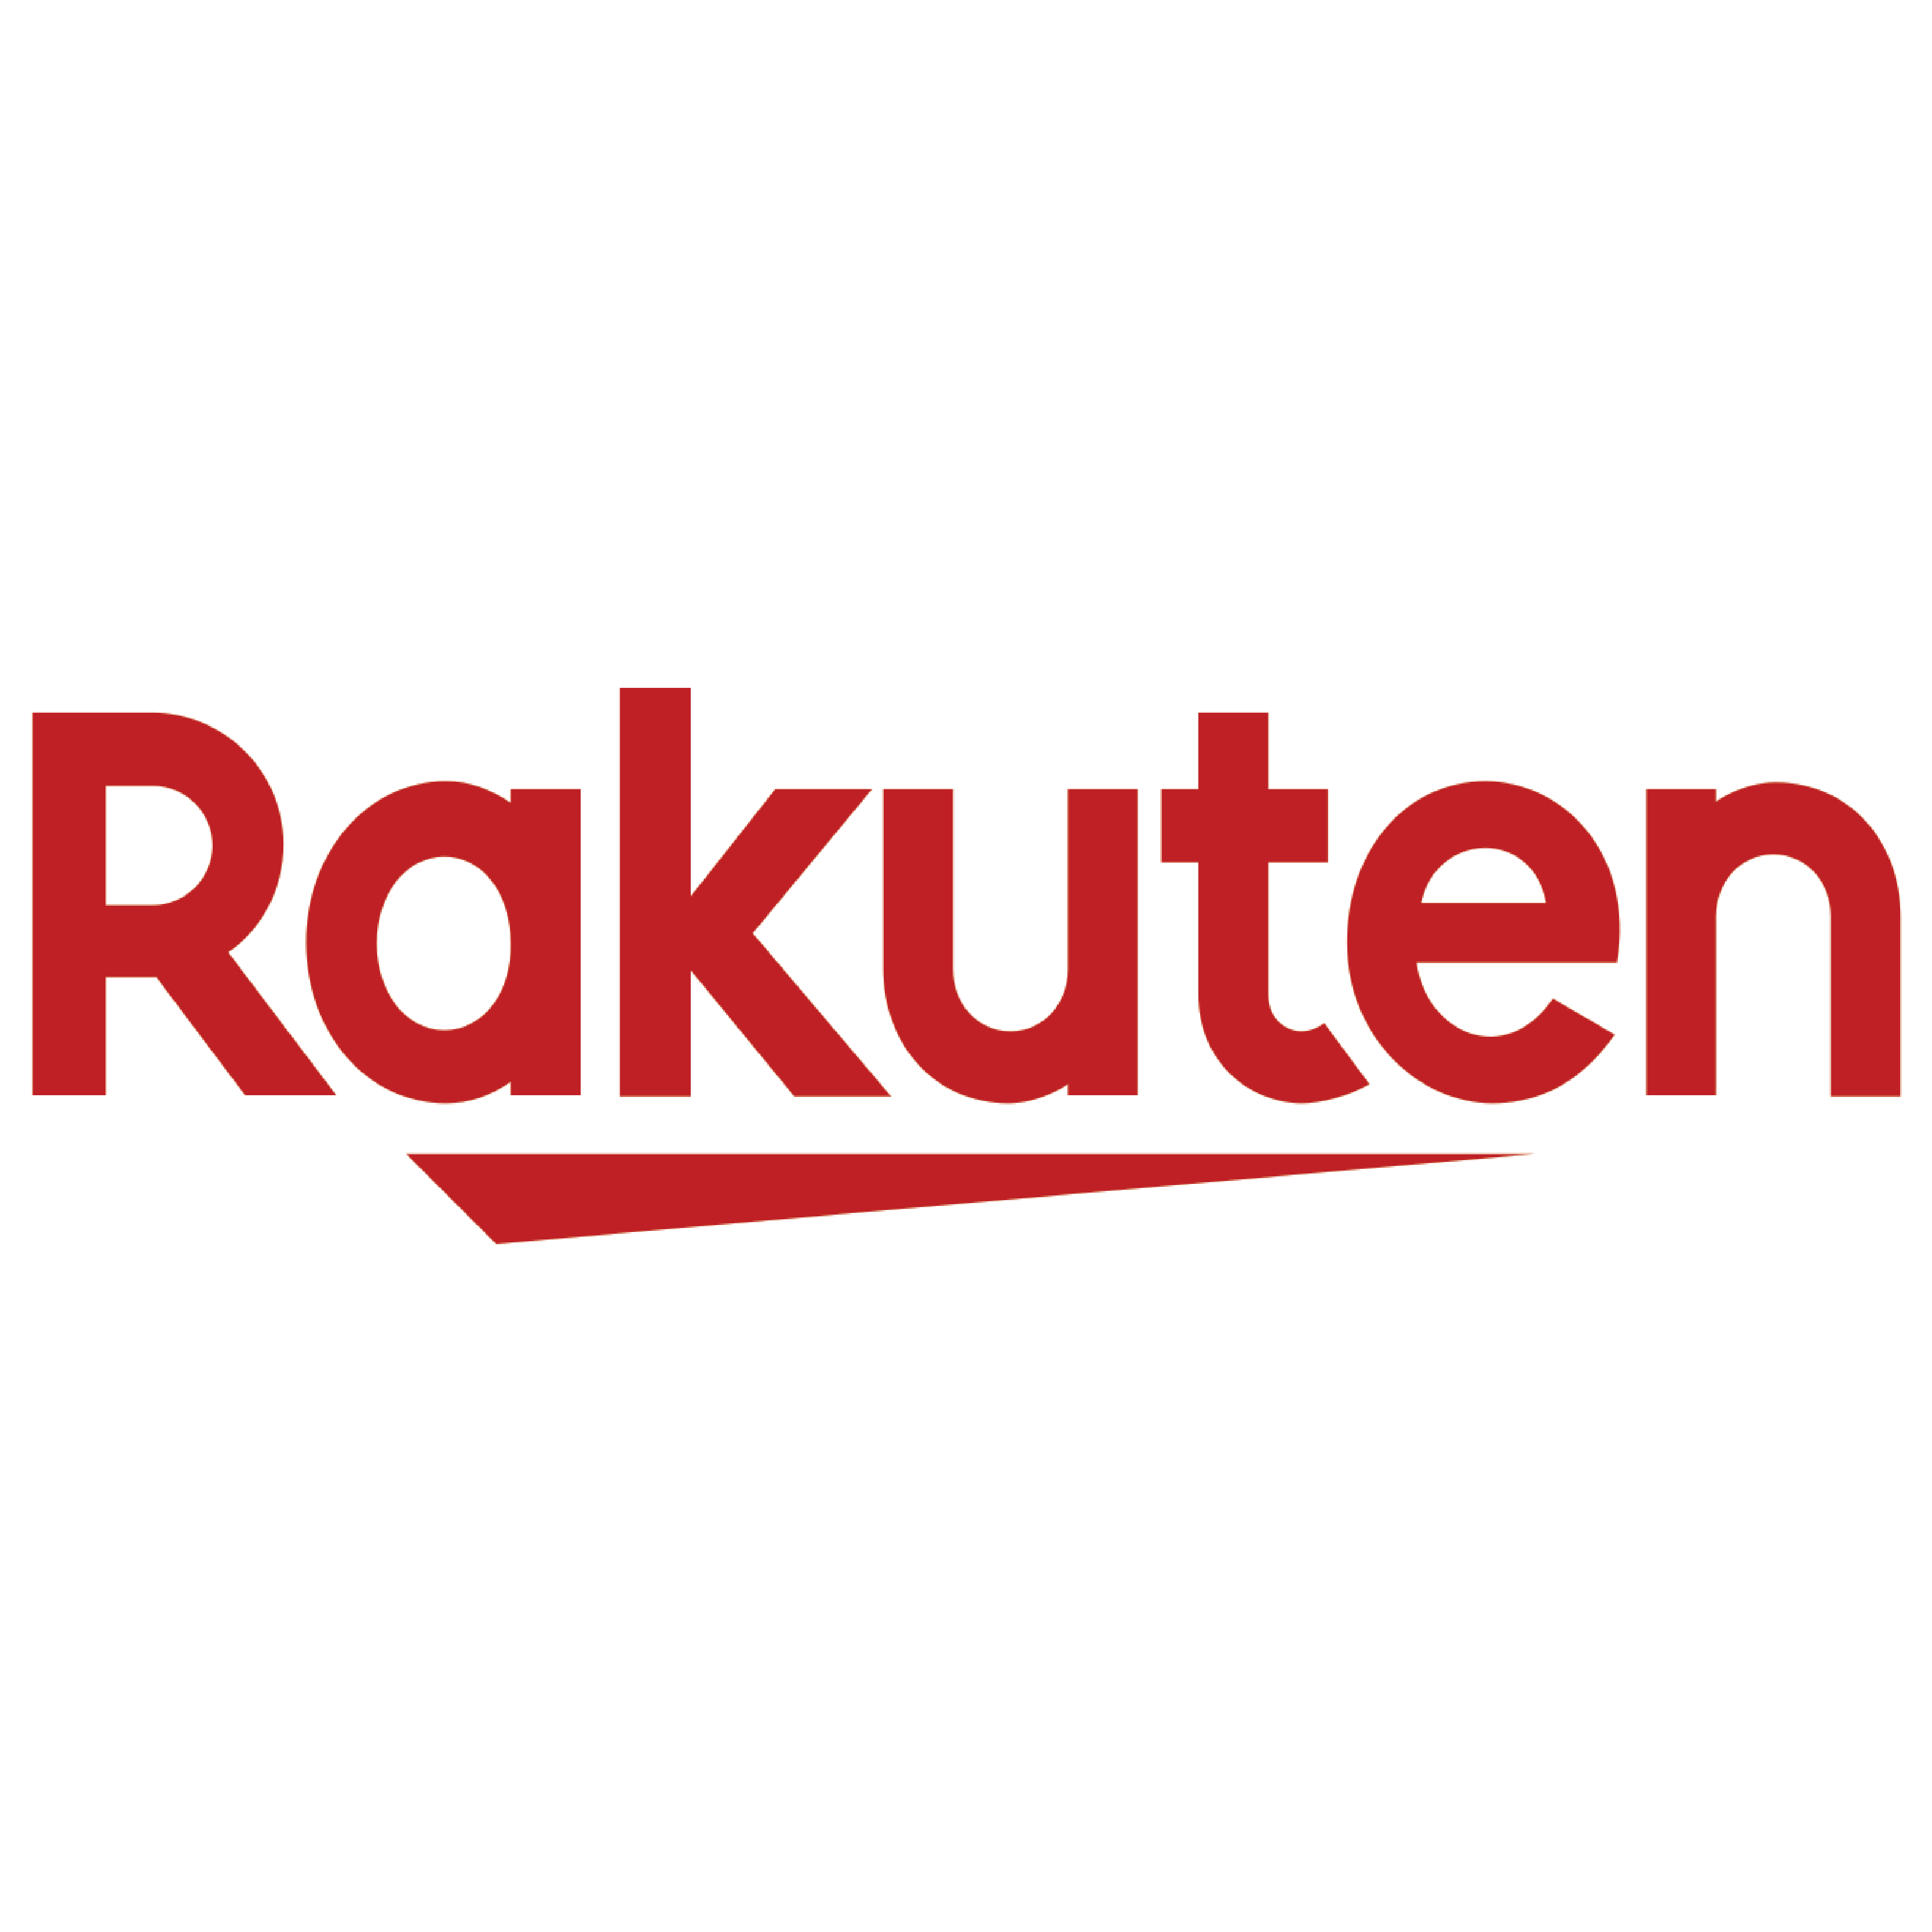 Rakuten Shipedge Integration